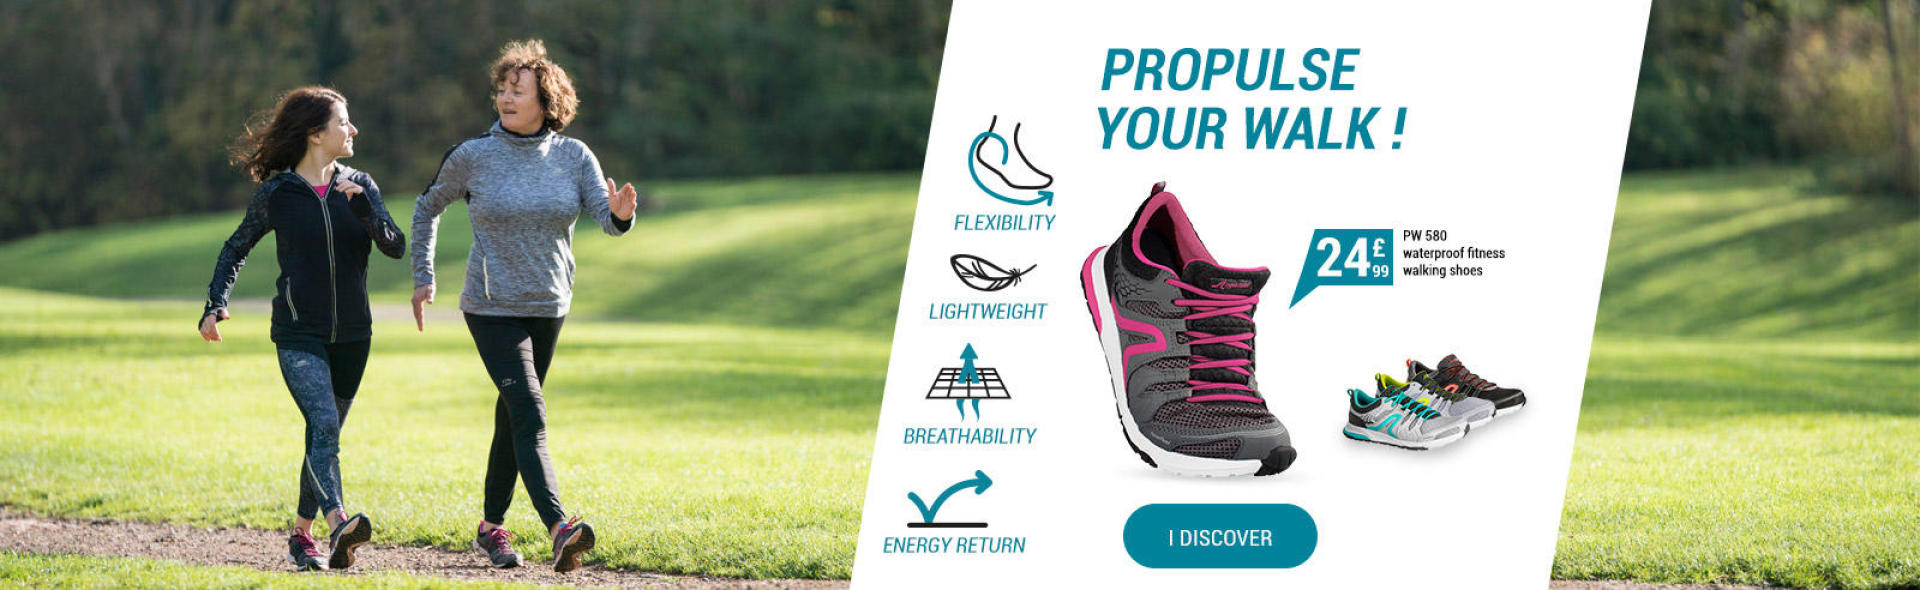 Propulse your walk